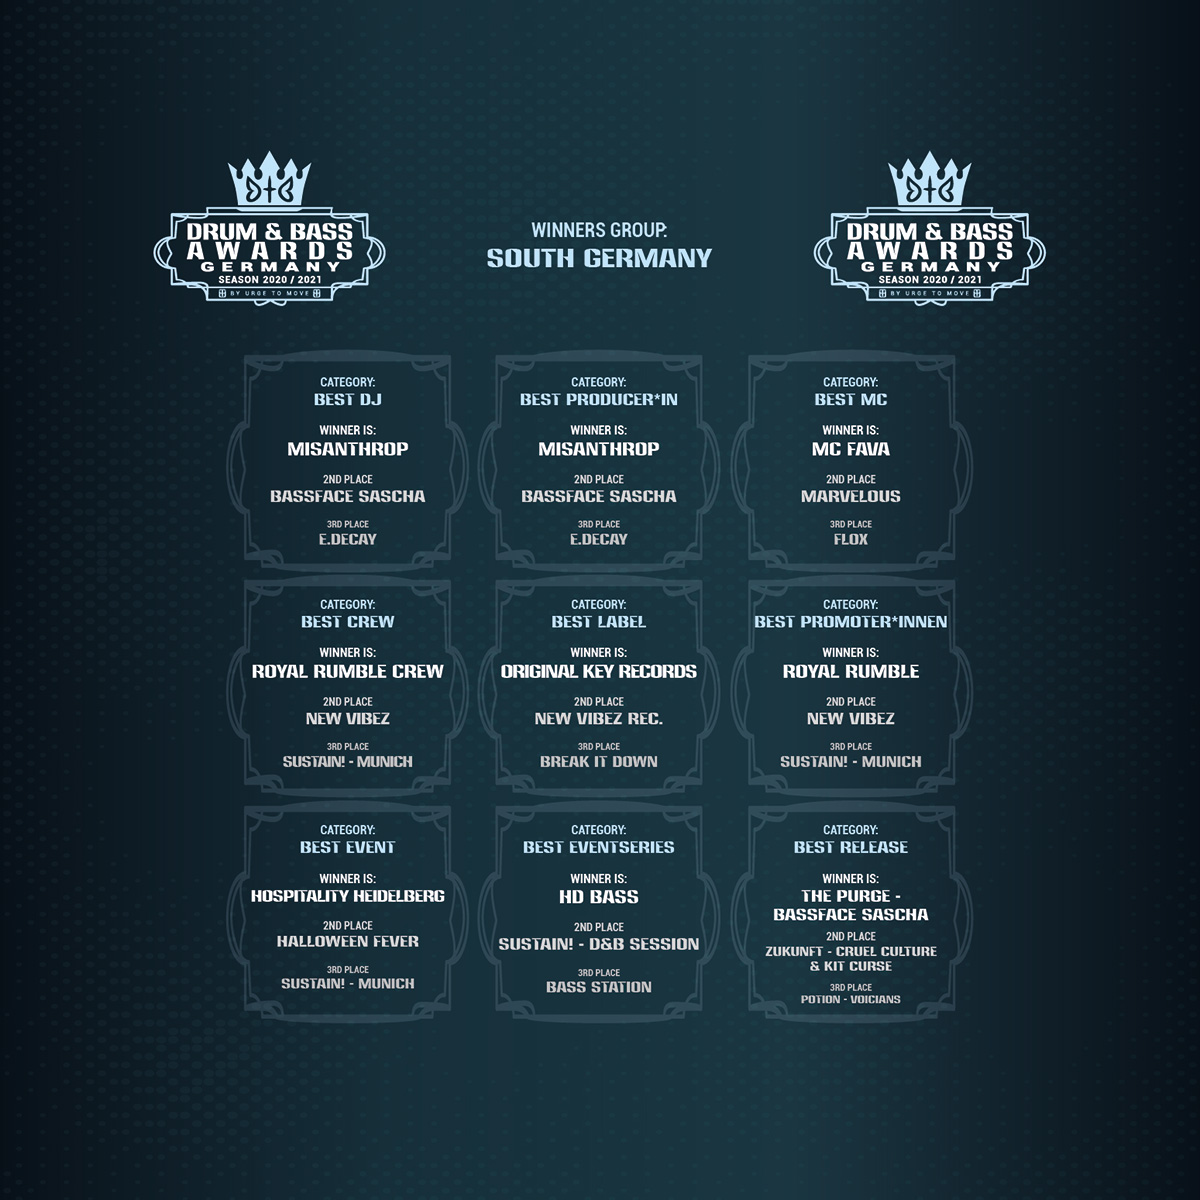 Drum and Bass Awards Germany - SOUTH